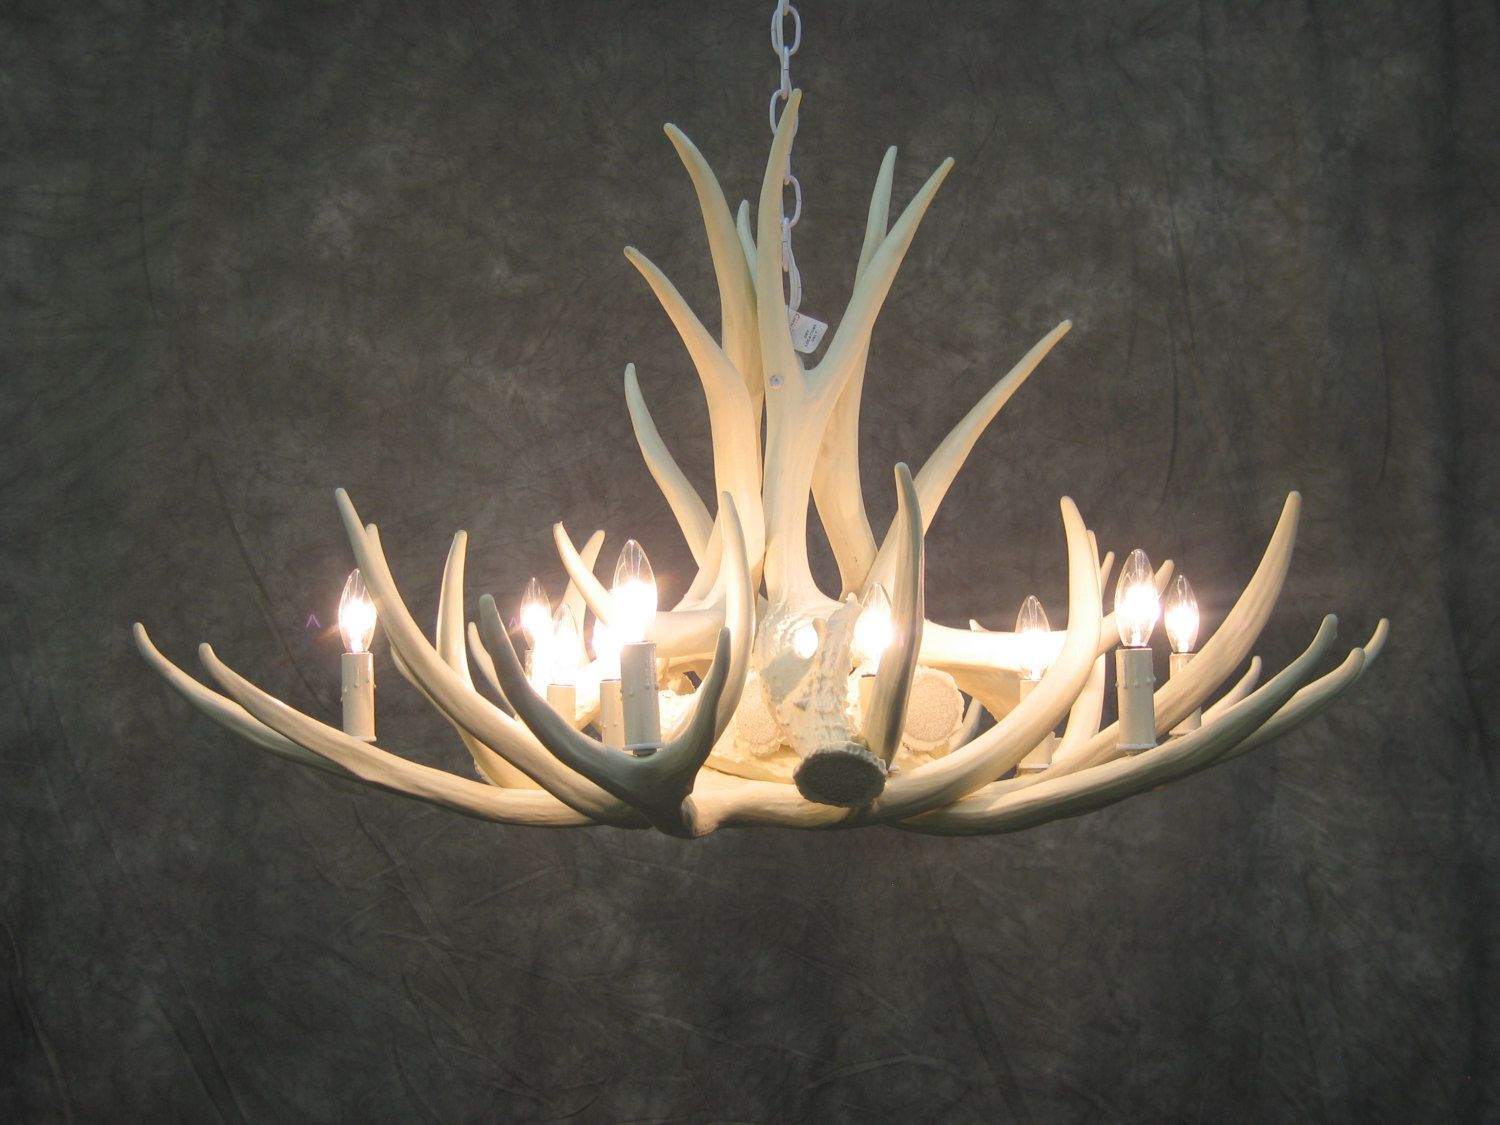 Lamps natural deer antler chandelier with light brown color for lamps natural deer antler chandelier with light brown color for ceiling lights hung with brown mozeypictures Gallery